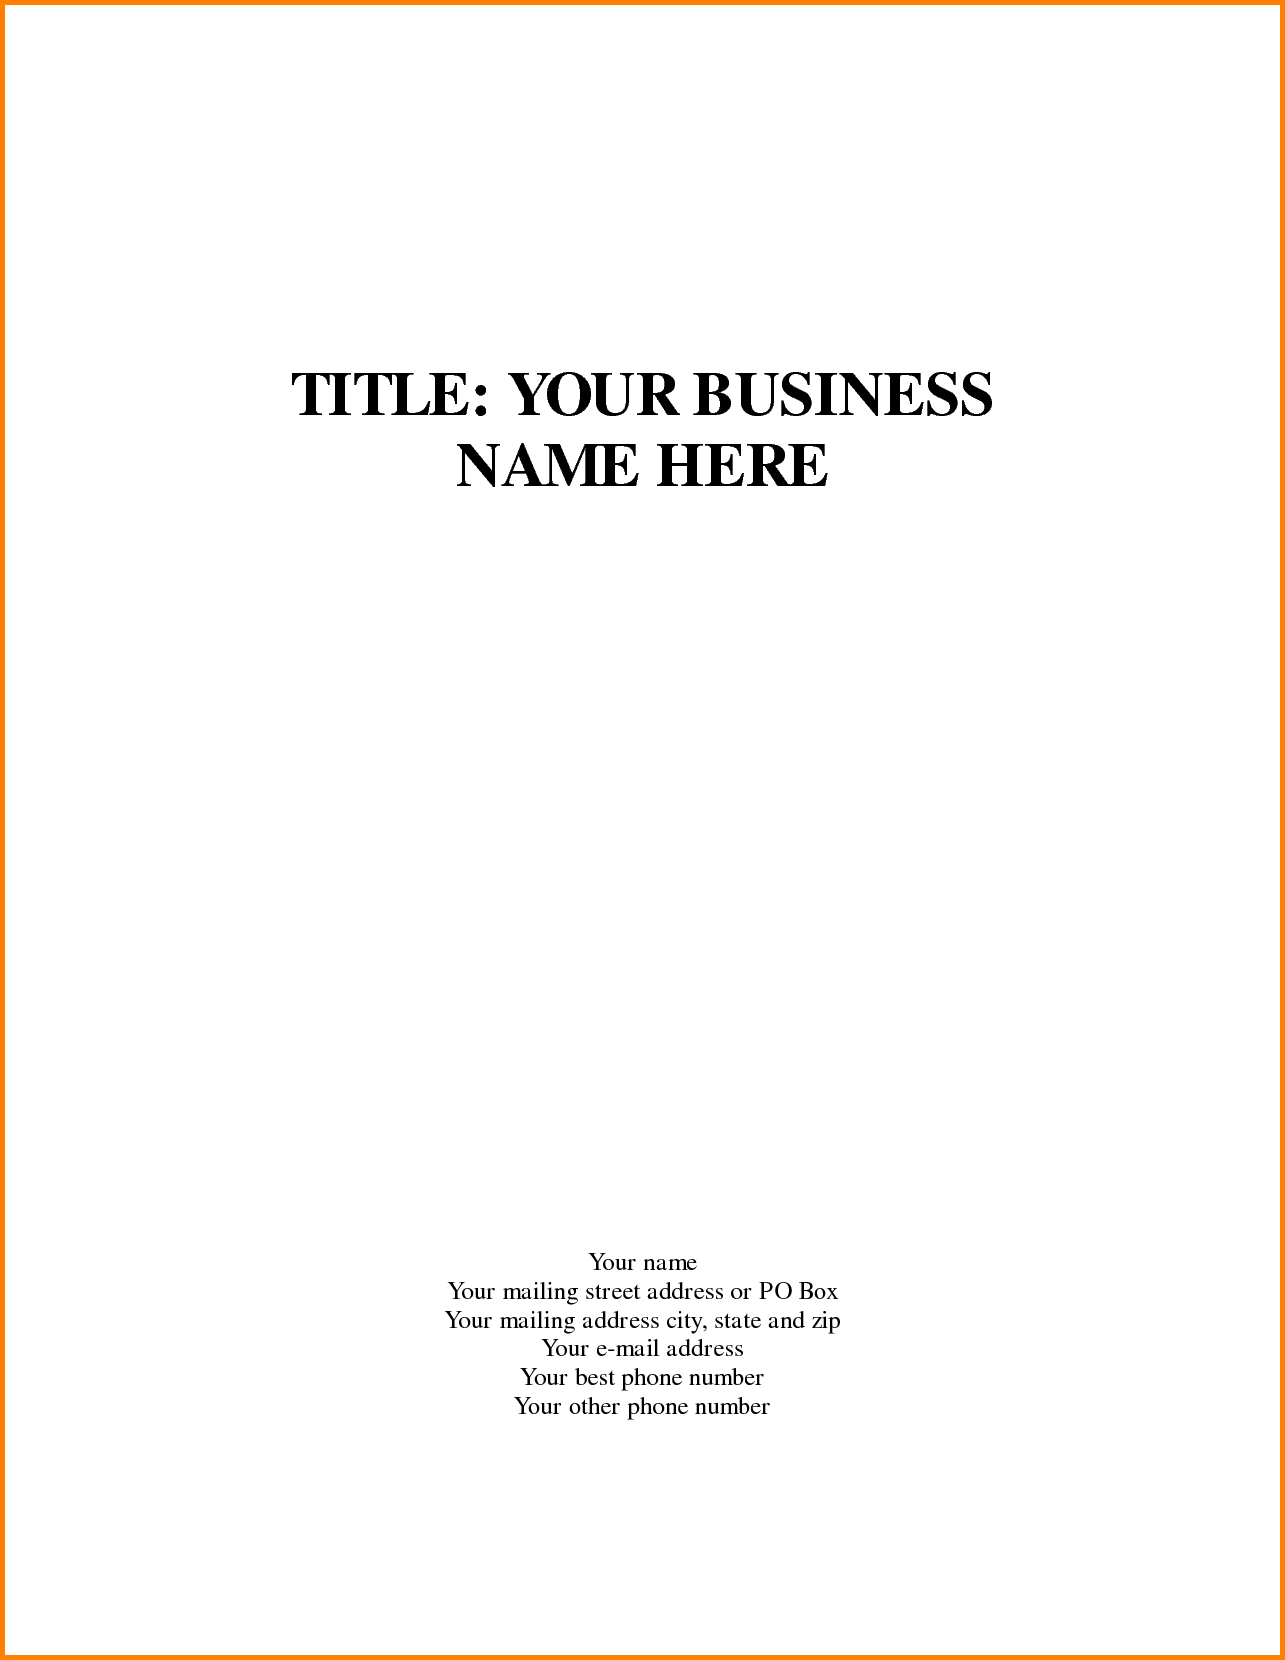 Business Title Page Template Quote Templates Apa Essay Help With  Business Title Page Template Quote Templates Apa Essay Help With Style And  College Format